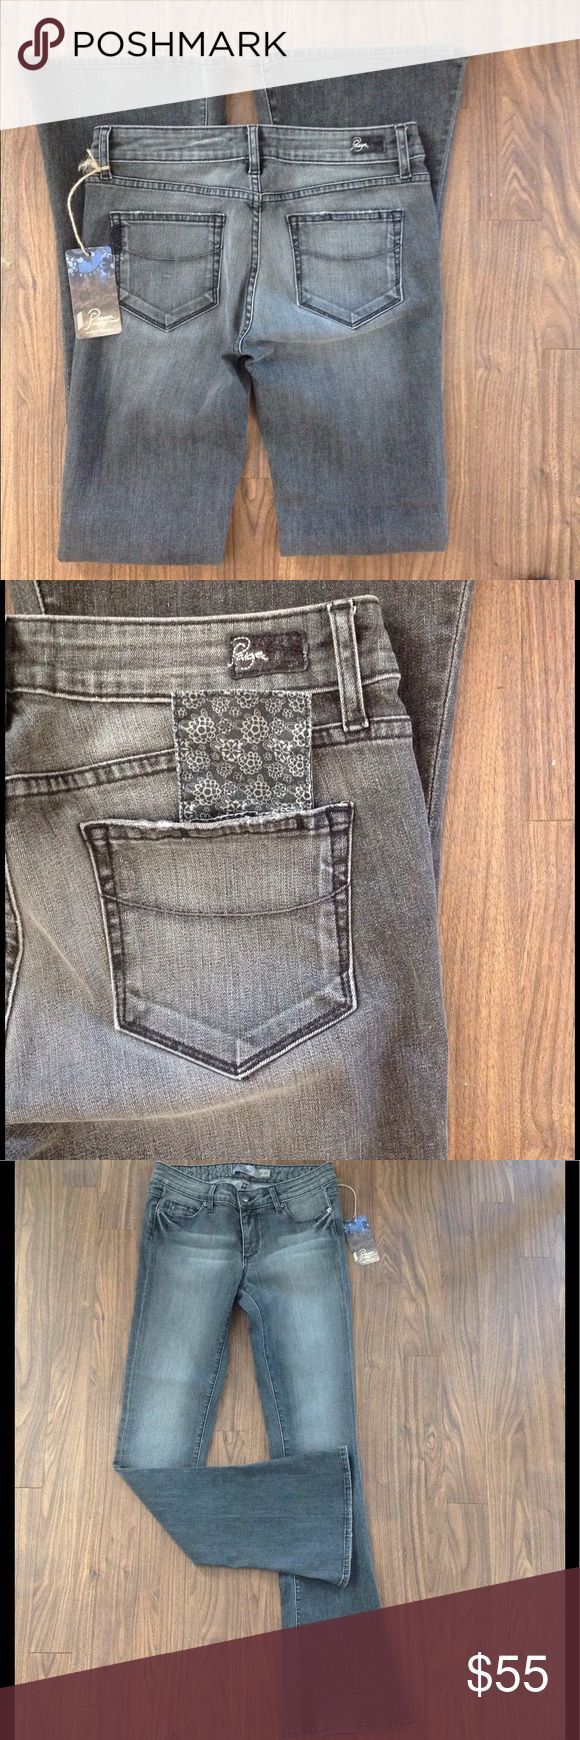 """PAIGE premium denim jeans LOU LOU WILDER sz27 NWT Paige premium LOU LOU denim jeans. Size 27. Inseam is about 34.5"""". Has a extra little pocket inside the back pocket. I pull it out so you can see. NWT. Style is wilder. Please look at all pictures before you purchase. And ask any questions. Thanks Paige Jeans Jeans"""